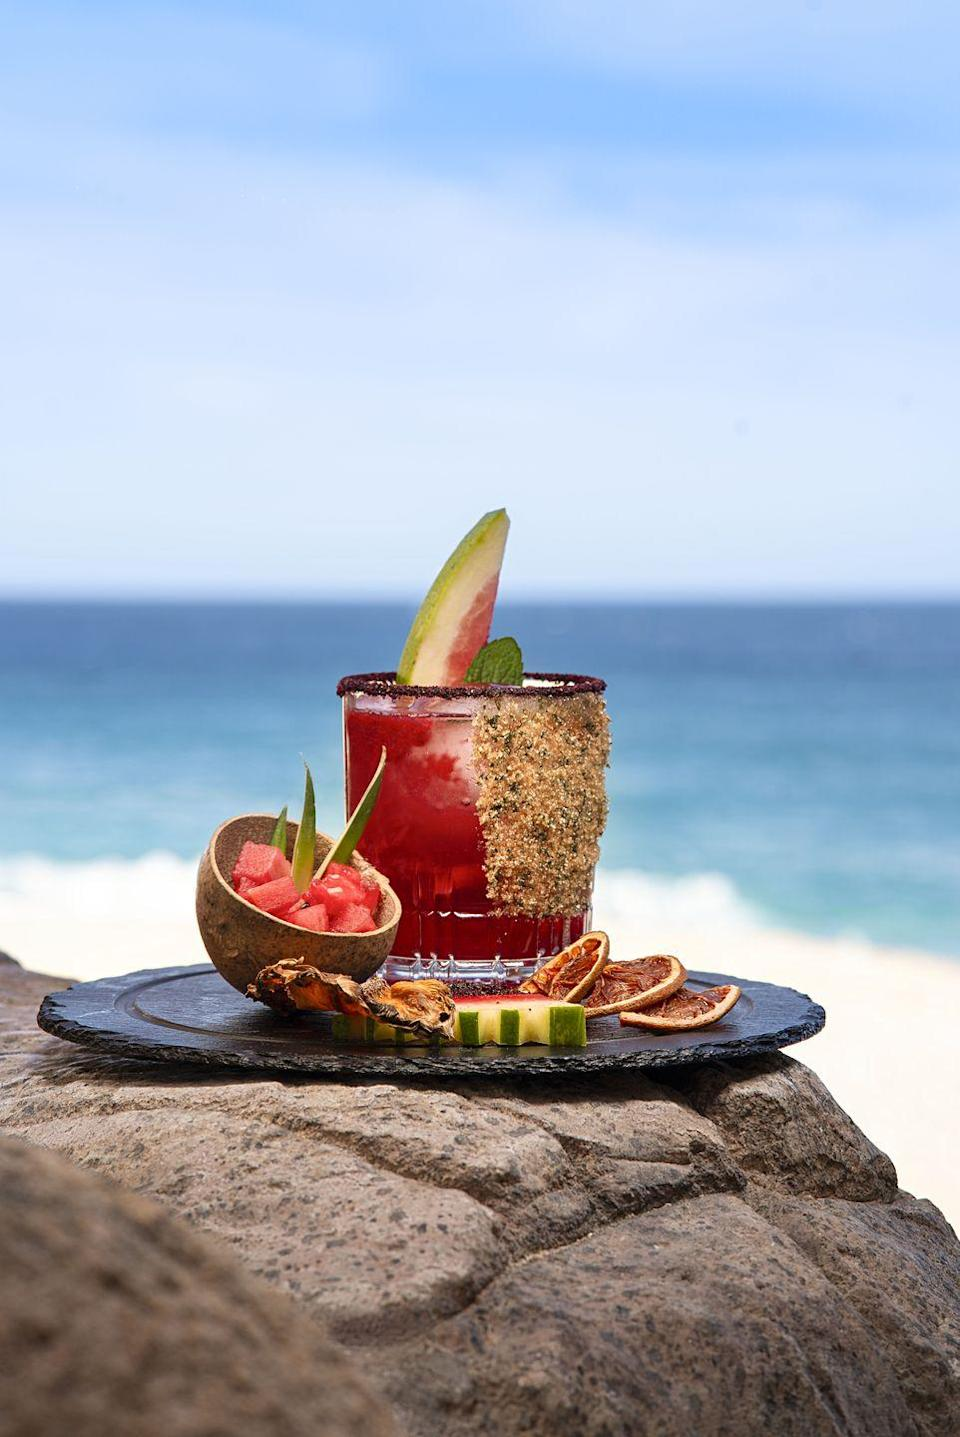 <p>This refreshing take on a classic margarita can be found at Grand Solmar Land's End Resort & Spa in Cabo San Lucas as part of this year's Margarita Festival hosted at the property. Luckily, they've showed us how to make it at home.</p><p><strong>Ingredients:</strong></p><p>2 ounces aged tequila (tequila añejo)</p><p>1 ounce watermelon puree</p><p>1 ounce pomegranate liqueur</p><p>1 1/2 ounces Triple Sec or Controyo</p><p>1 ounce lemon juice</p><p>1/2 ounce simple syurp,</p><p>basil leaves, for garnish</p><p><strong>Directions:</strong><br> Pour tequila, Triple Sec, pomegranate liqueur, and mashed watermelon into cocktail shaker and shake vigorously. Add lemon juice and simple syrup and shake again. Salt the rim of an Old-Fashioned glass and add ice. Pour in ingredients from cocktail shaker and garnish with a basil leaf.</p>